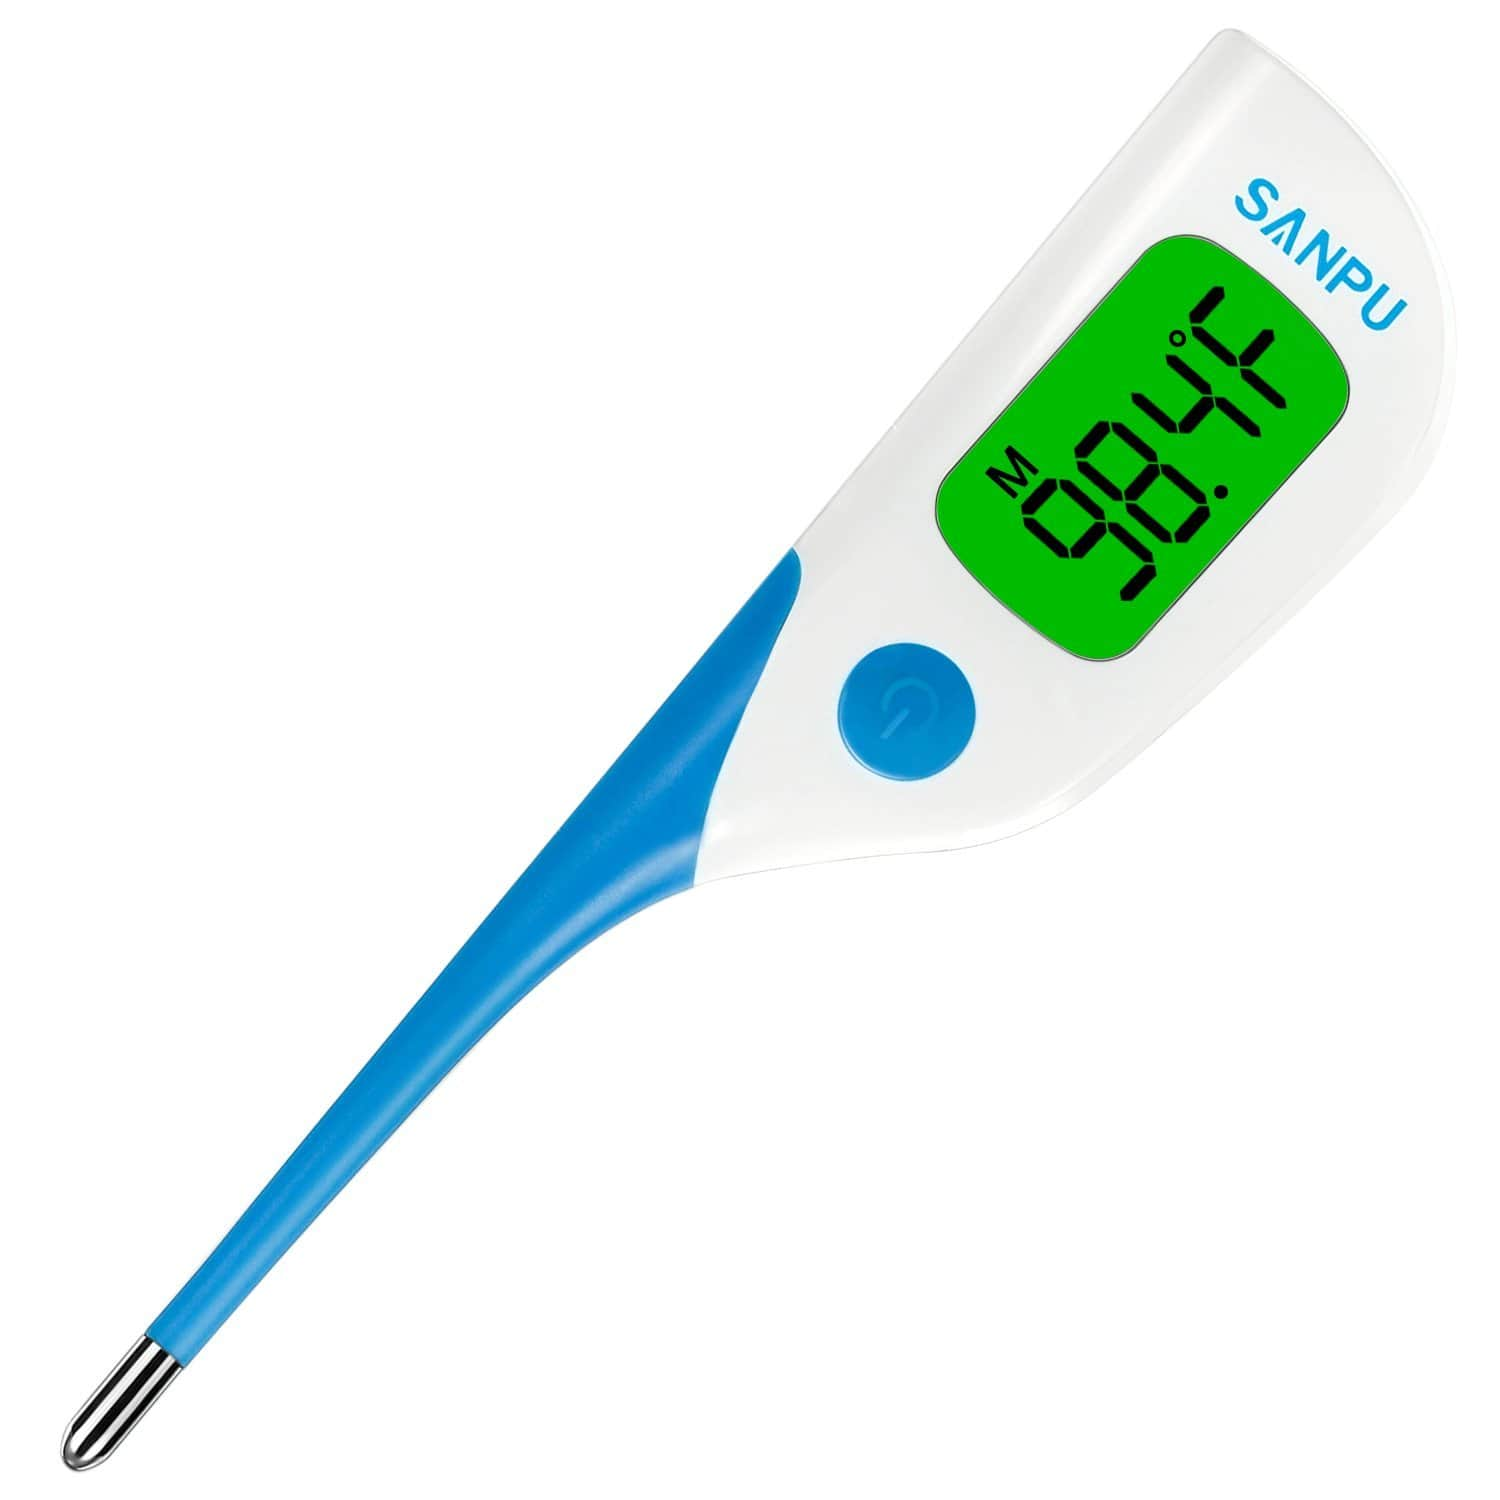 SANPU 8 Second Digital Oral / Armpit Thermometer $3.89